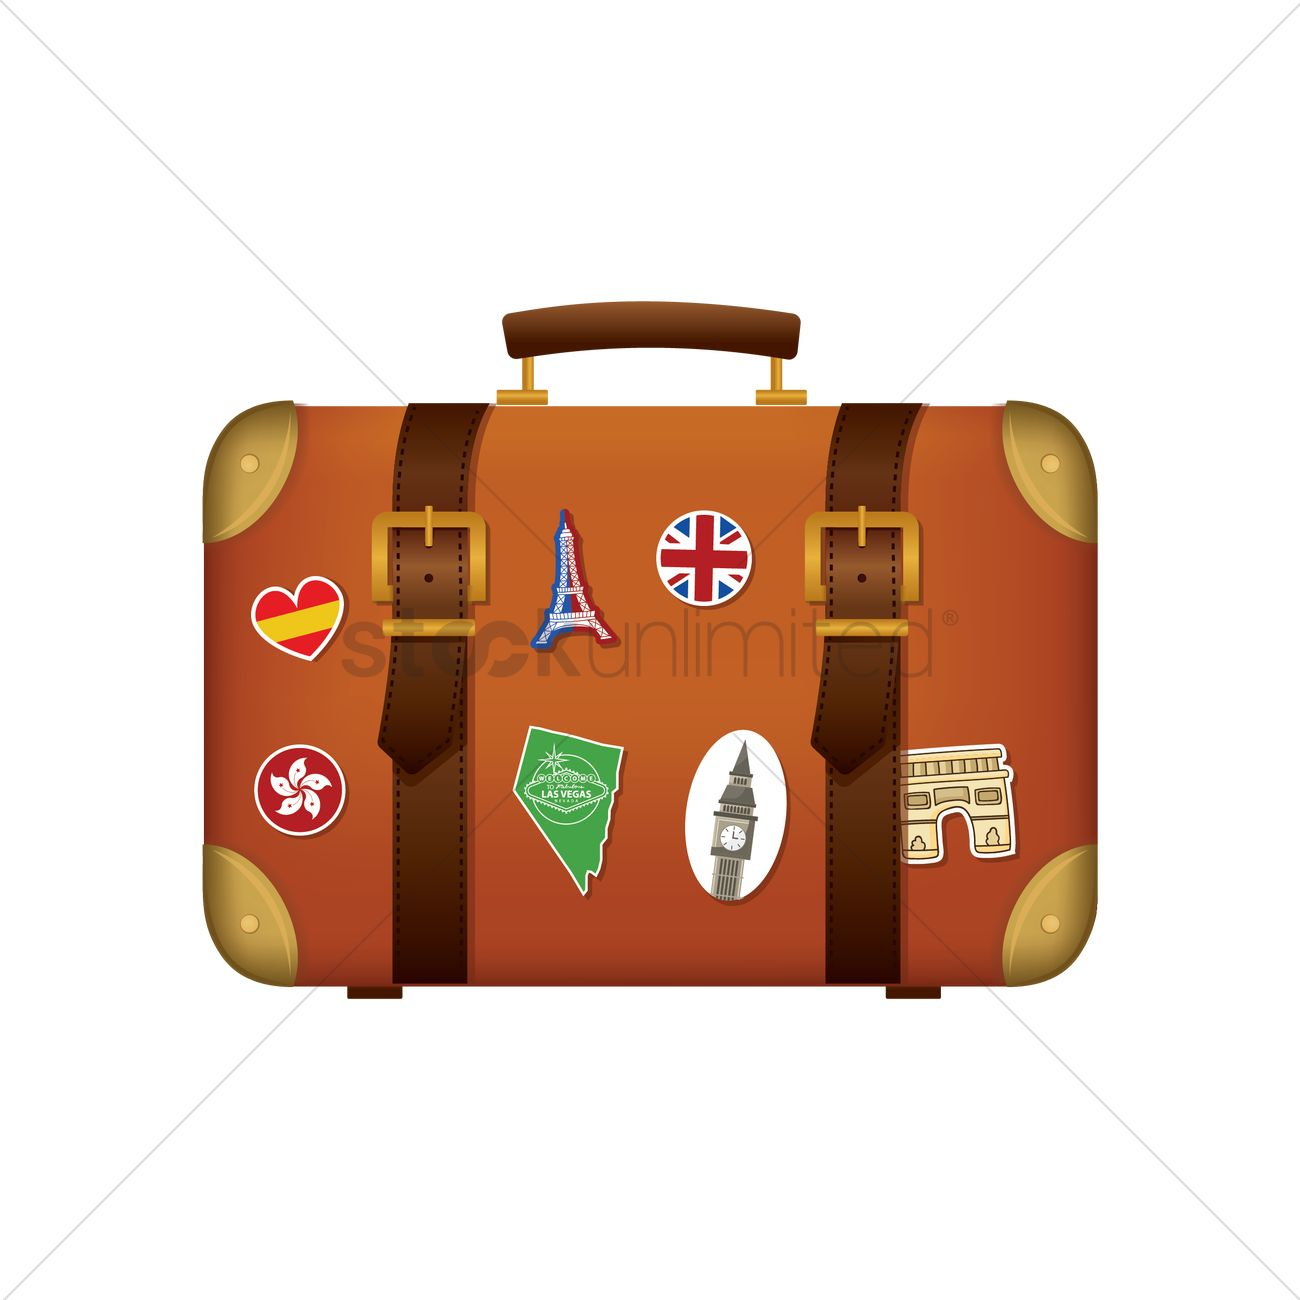 Travel bag icon Vector Image - 1705338 | StockUnlimited